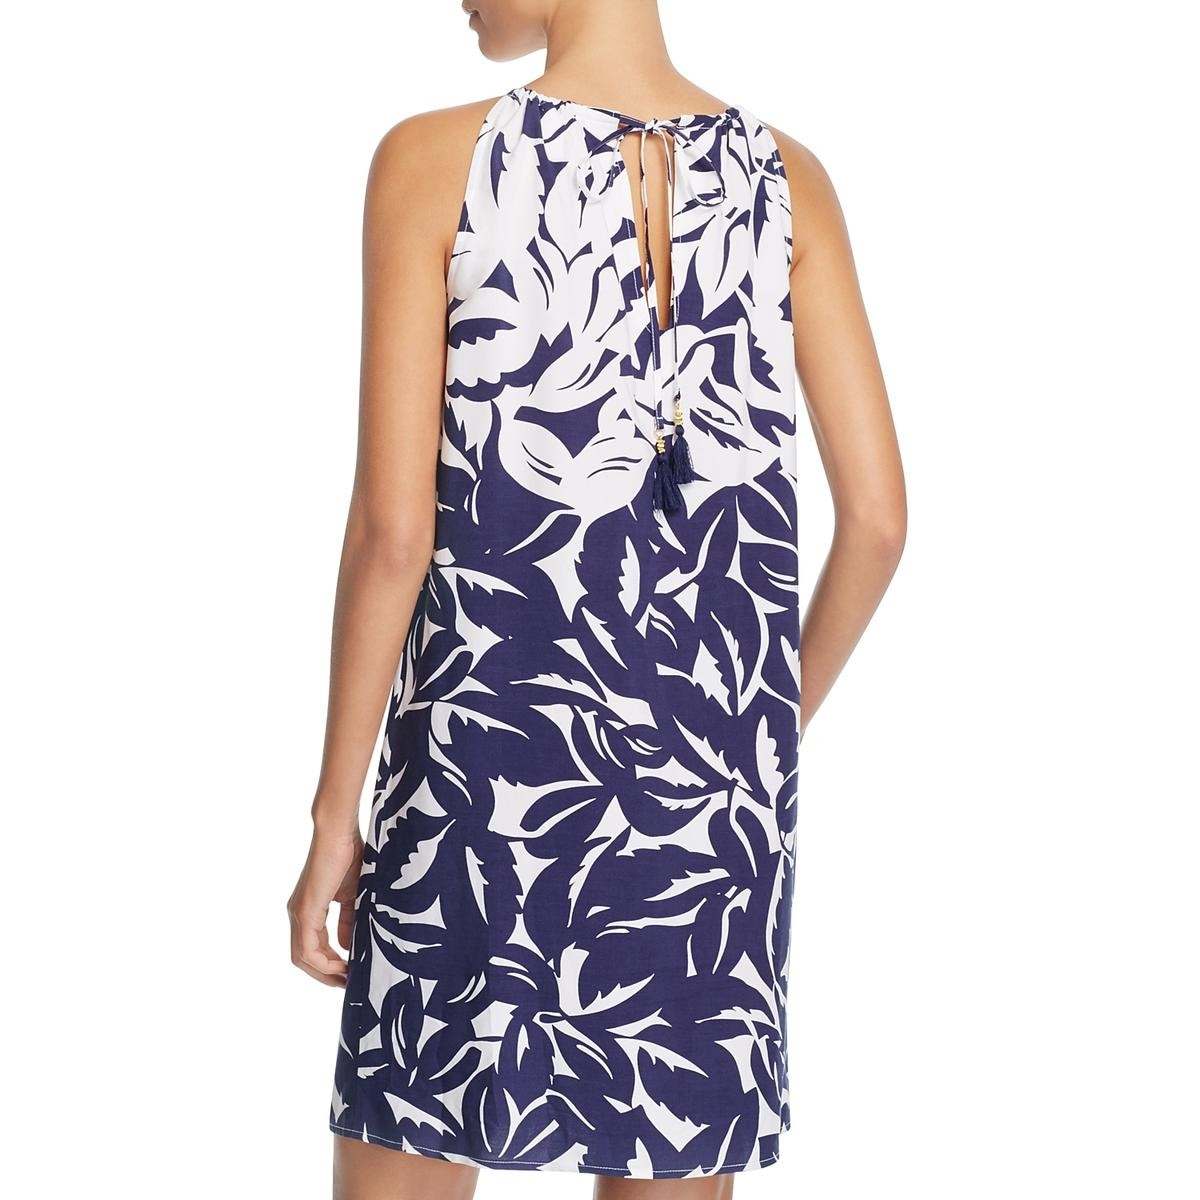 86ebd8e85d Shop Tommy Bahama Womens Graphic Hi Neck Dress Swim Cover-Up - Free  Shipping Today - Overstock - 21150349